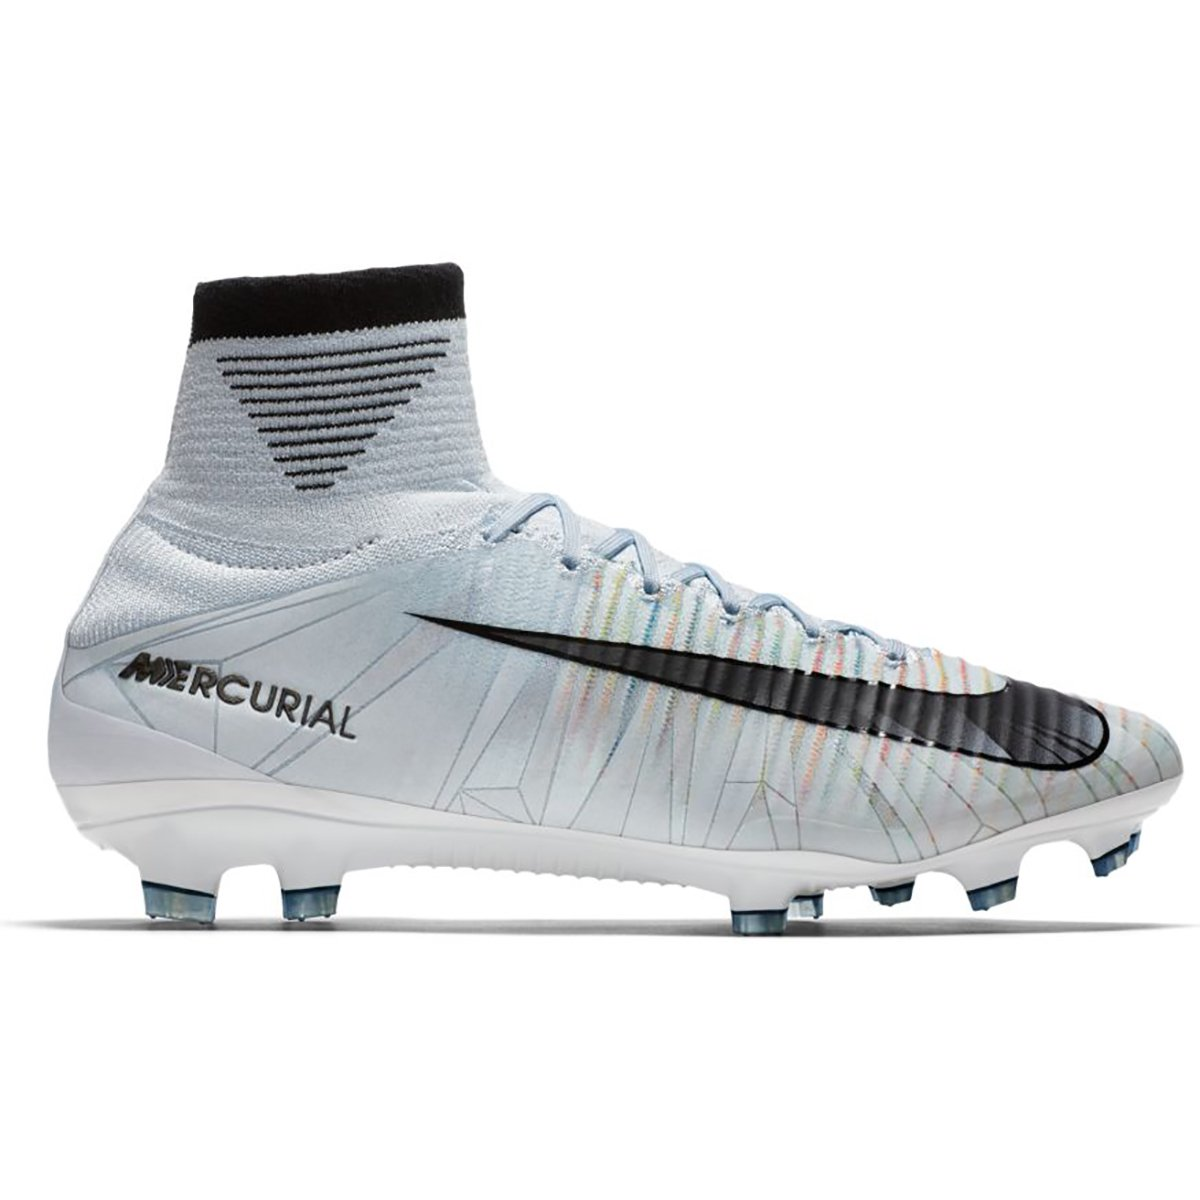 Nike Mercurial Superfly V CR7 FG Football Boot Football Boots   Amazon.co.uk  Sports   Outdoors 038b143e6